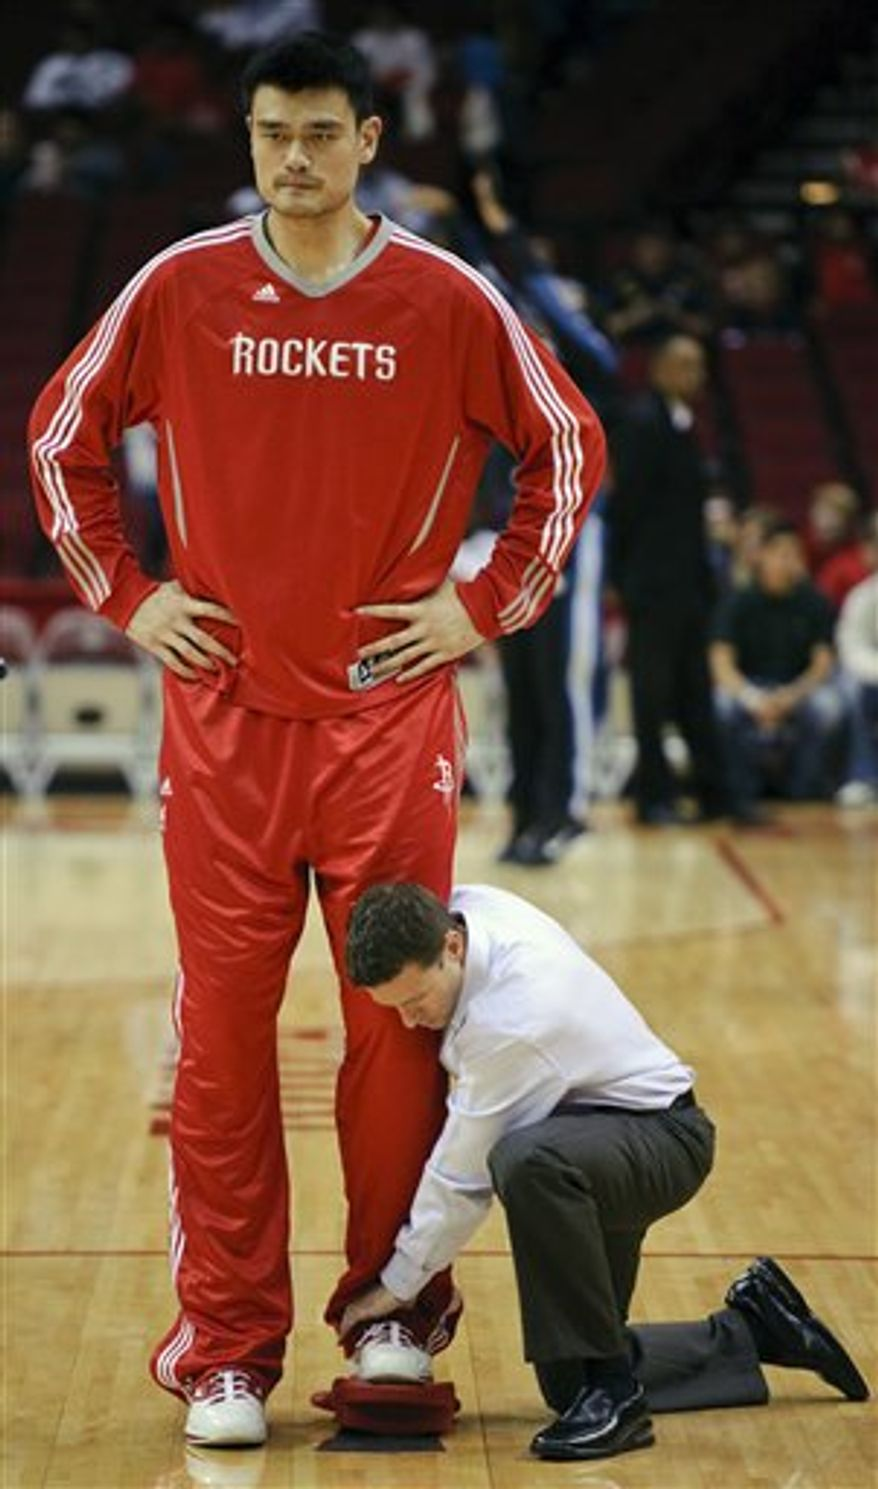 FILE - In this file photo taken Nov. 7, 2010, Houston Rockets trainer Jason Biles, left, works on the left foot of center Yao Ming, of China, before the Rockets' NBA basketball game against the Minnesota Timberwolves in Houston. Ming, 30, will miss the rest of the season because of a stress fracture in his left ankle. The Rockets announced the decision Friday, Dec. 17, 2010, a day after the injury was found in an MRI exam. Team physician Walter Lowe said surgery is the usual treatment for such an injury, which has sidelined Yao since Nov. 10. (AP Photo/Dave Einsel, File)